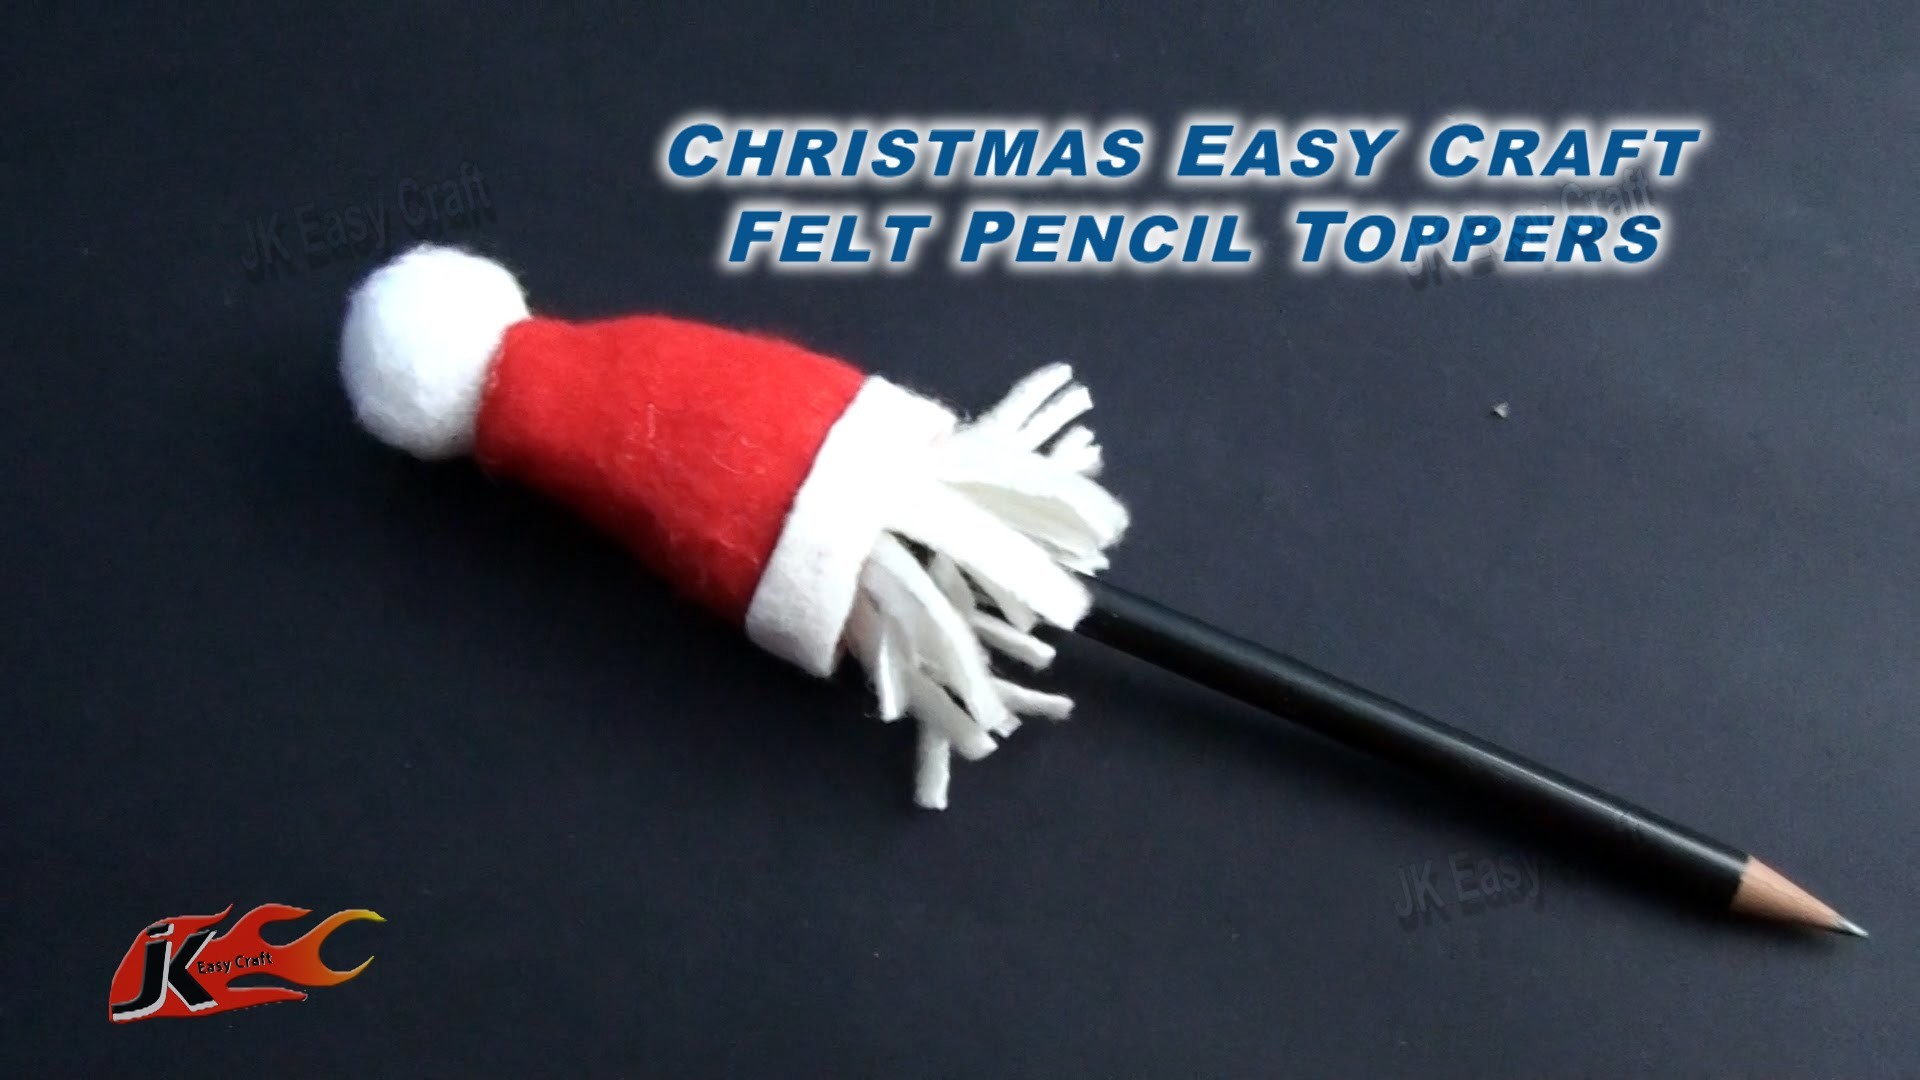 DIY Christmas Craft - Felt Pencil Toppers | How to make |  JK Easy Craft 101